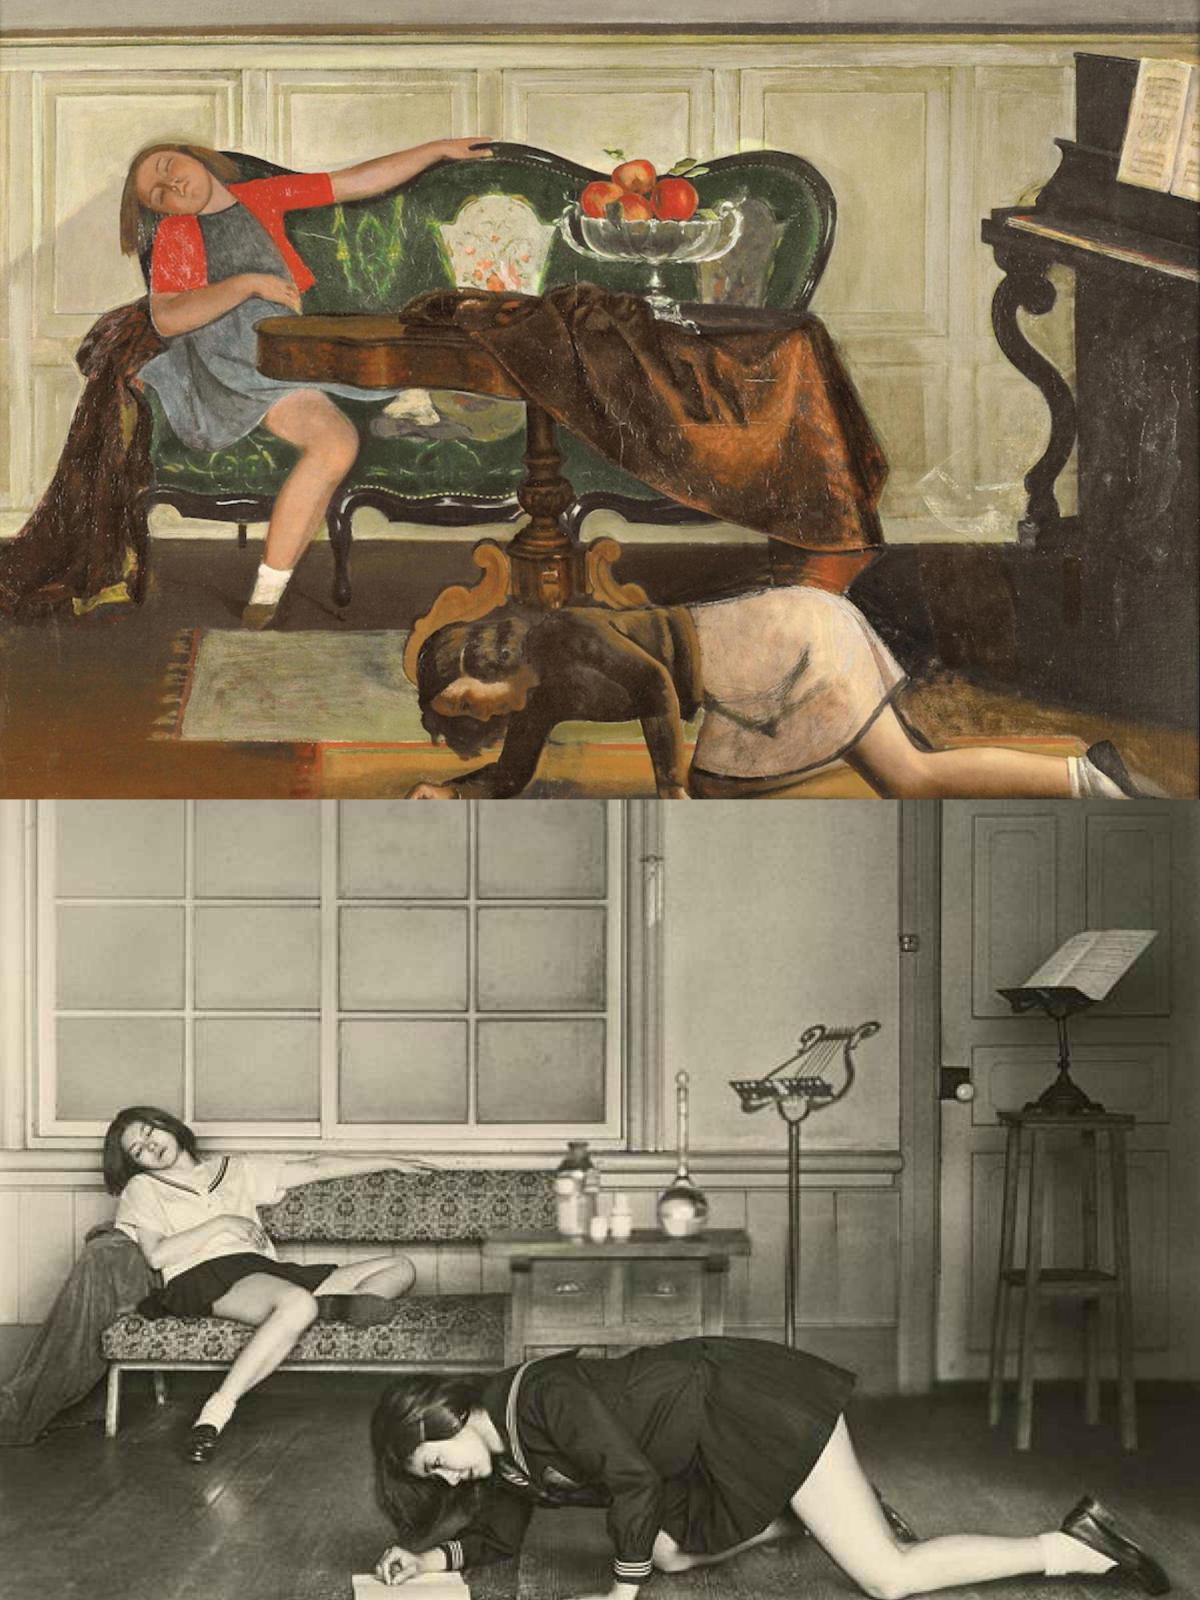 https://parodiesandvariations.files.wordpress.com/2014/08/balthus-the-salon_collage.jpg